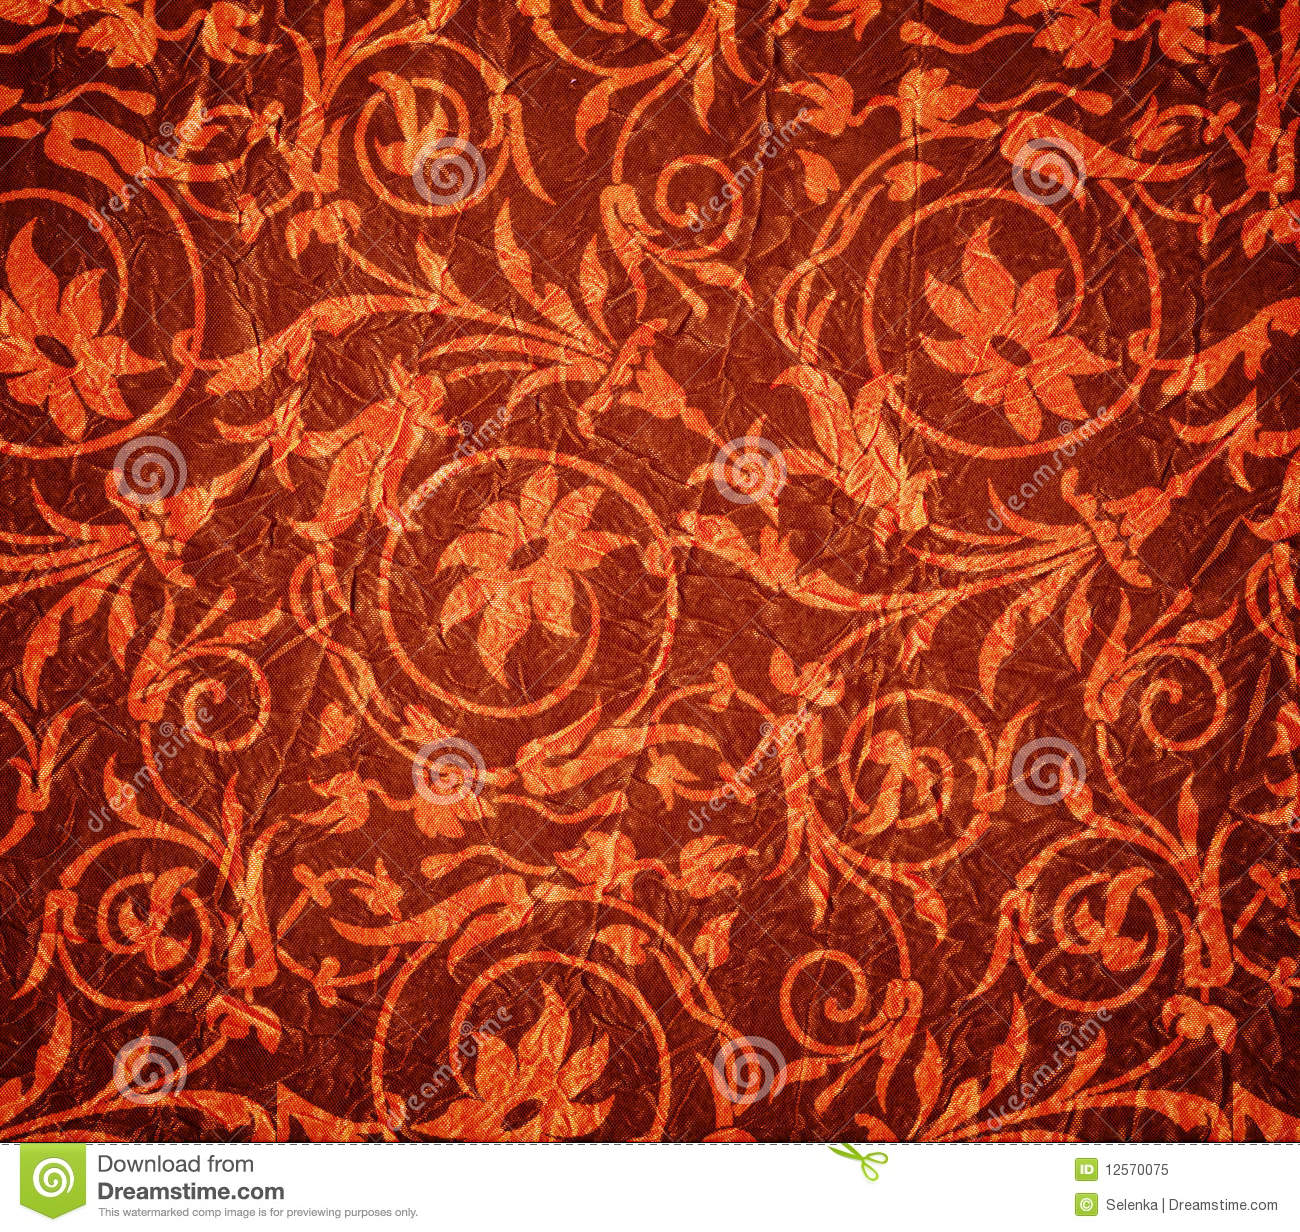 Red crumpled fabric